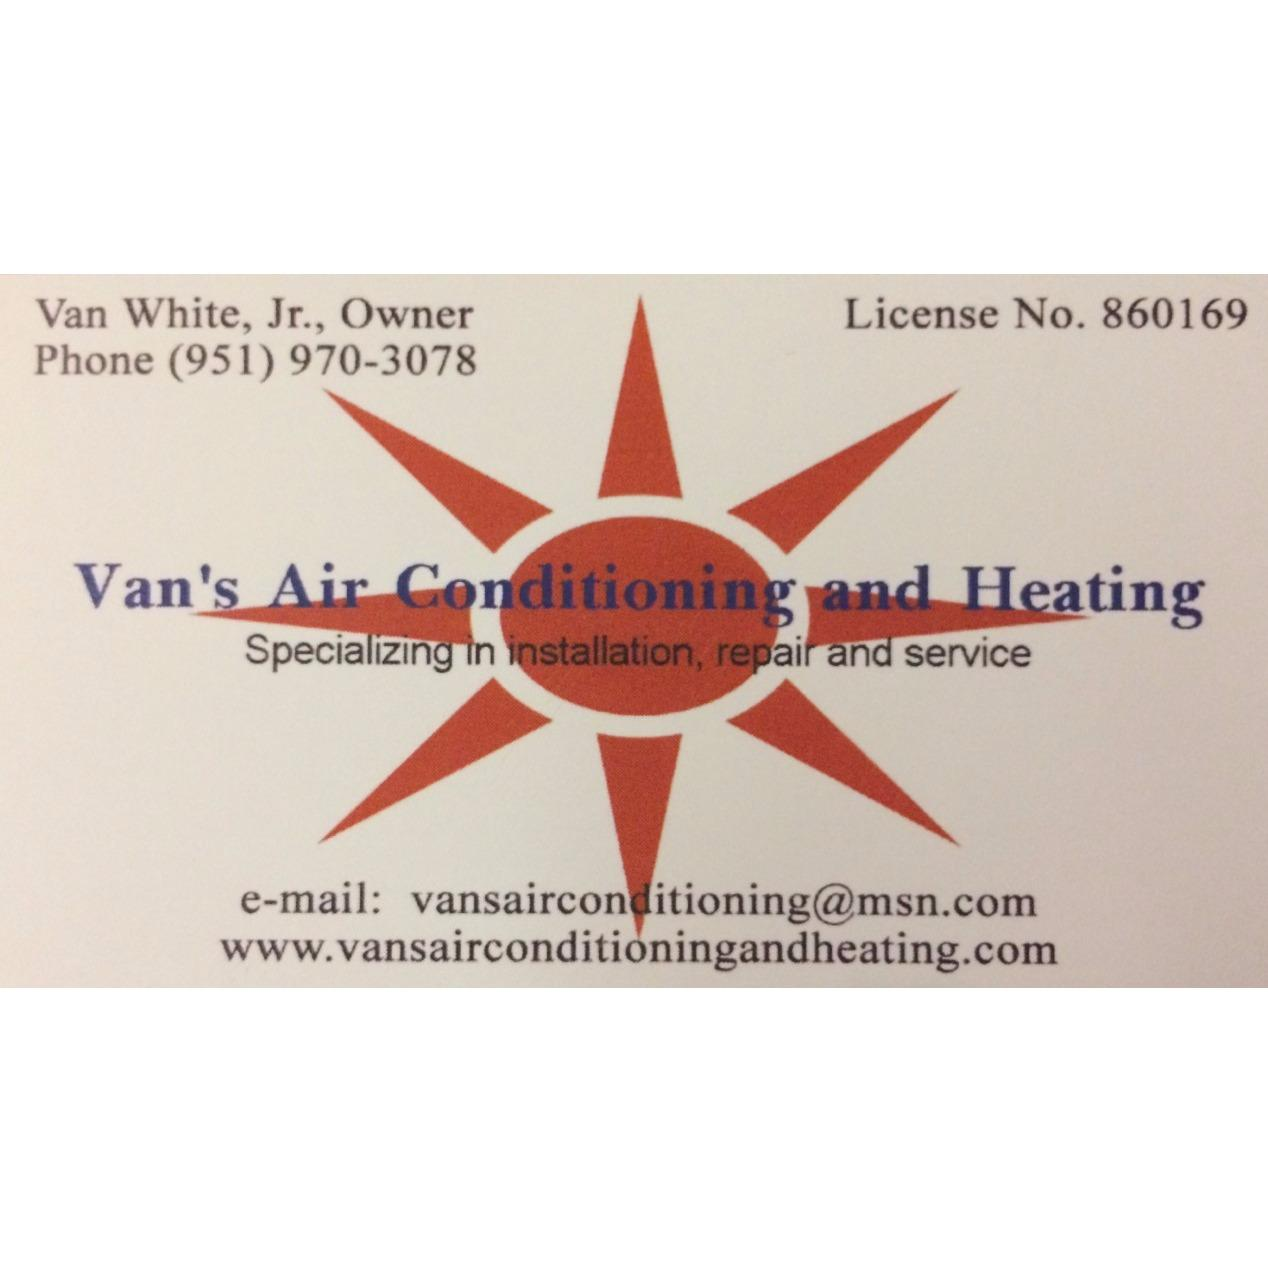 Van's Air Conditioning And Heating